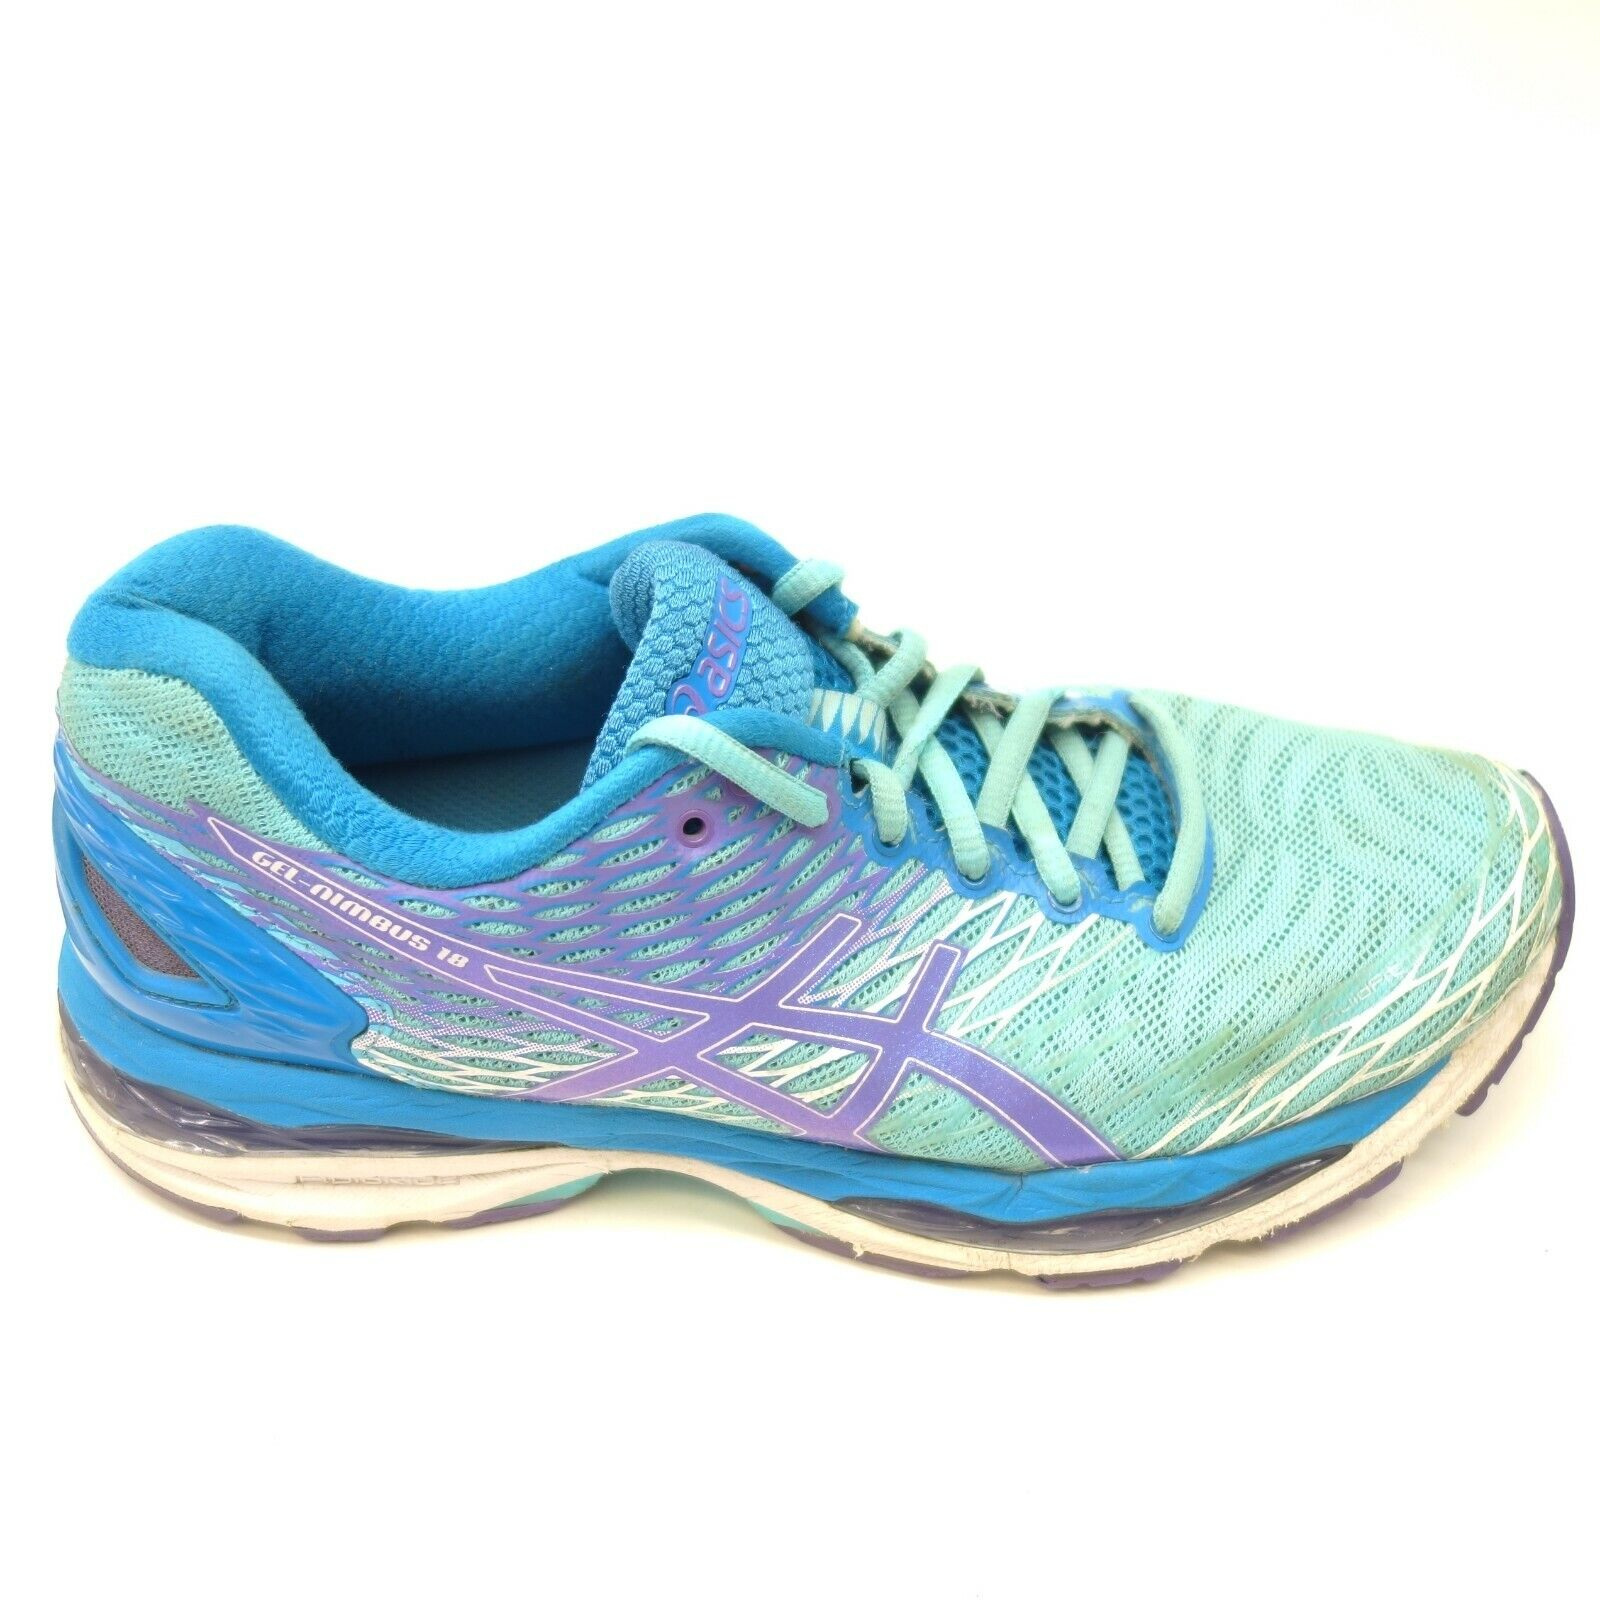 Asics Gel-Nimbus 18 Sz 8 bluee Athletic Running Training Womens shoes